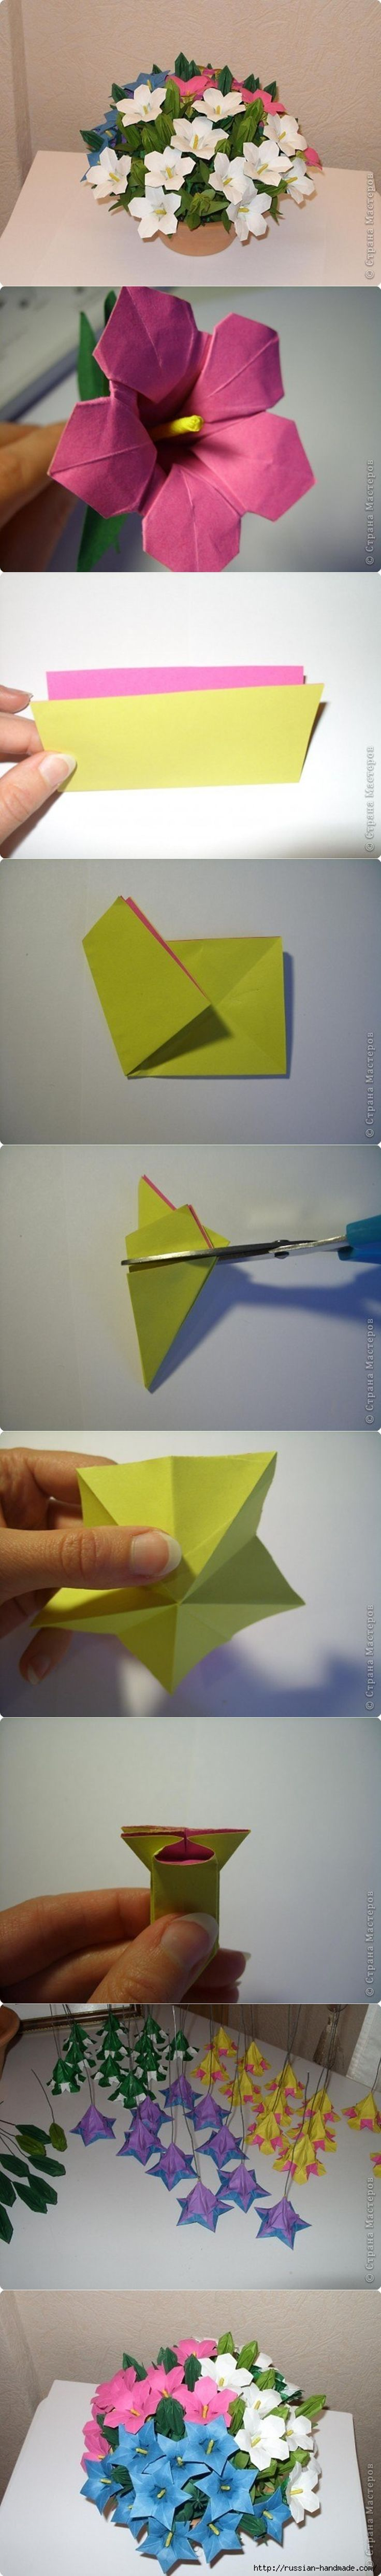 Paper origami Lily or Morning Glory. http://www.fabartdiy.com/diy-beautiful-paper-origami-lily-flower-bouquet/